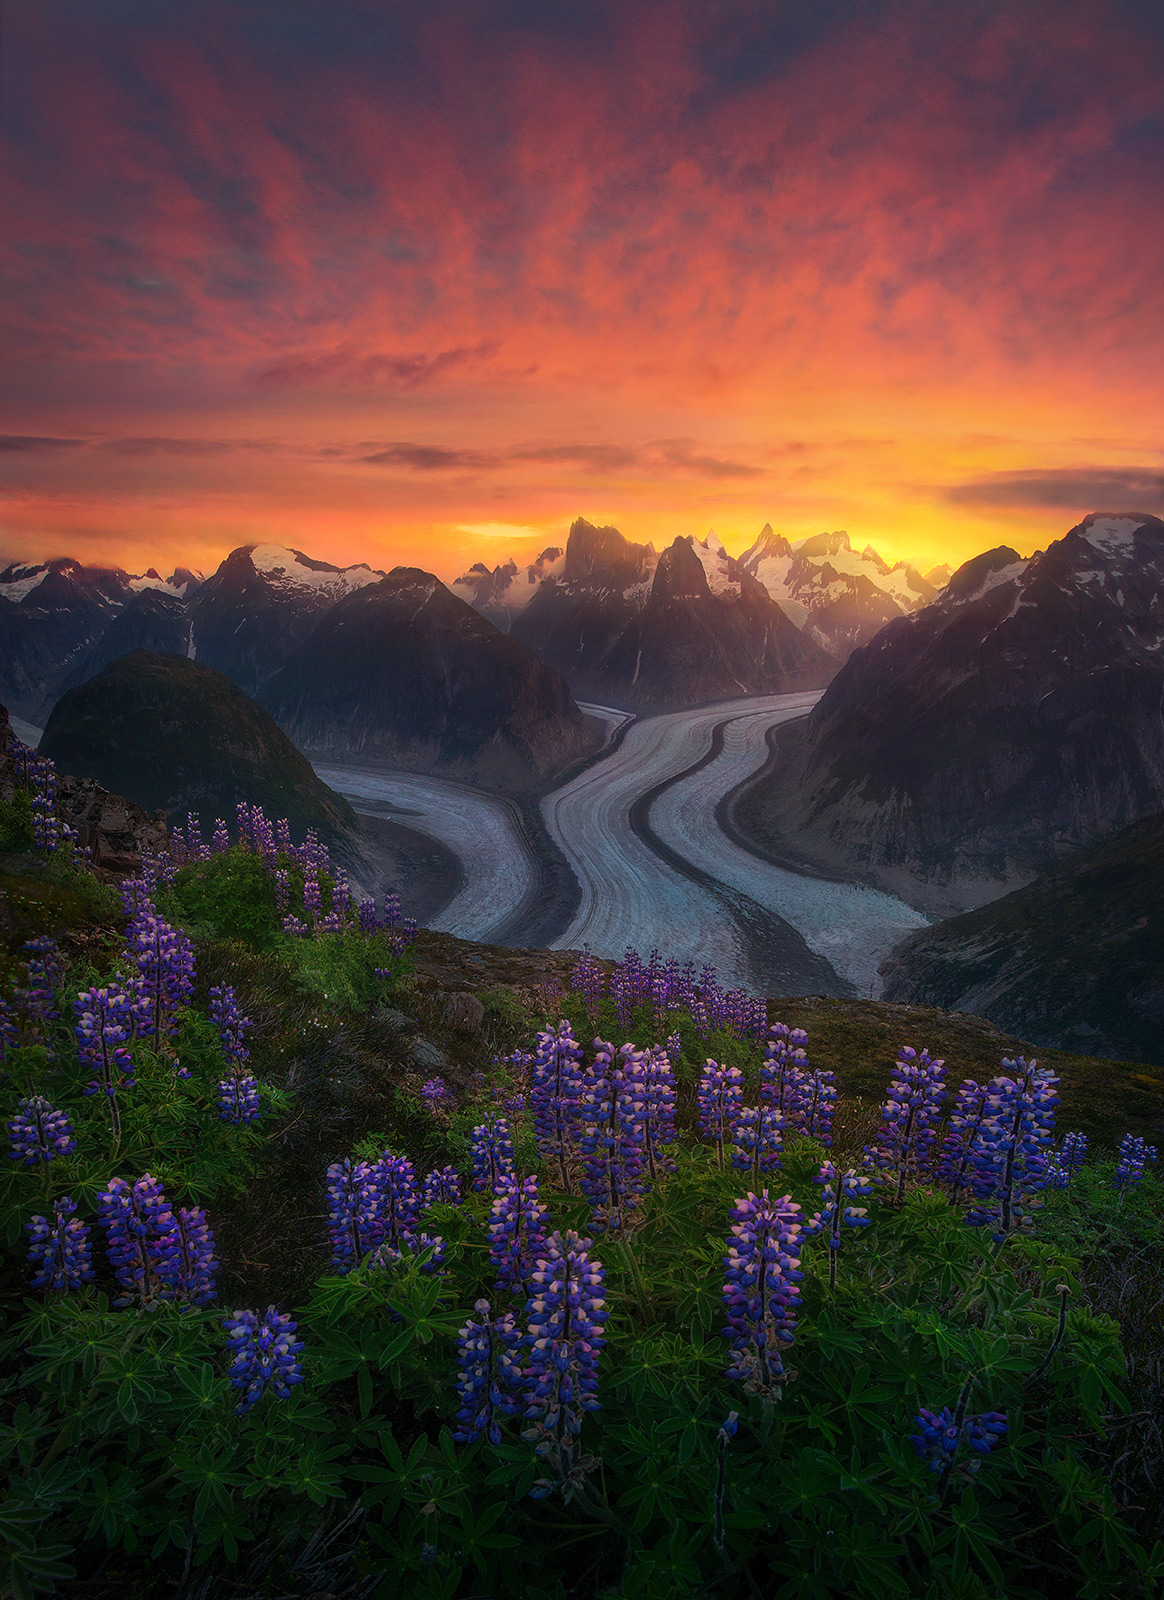 Alaska, wilderness, summer, flowers, remote, unique, glacier, coast mountains, photo